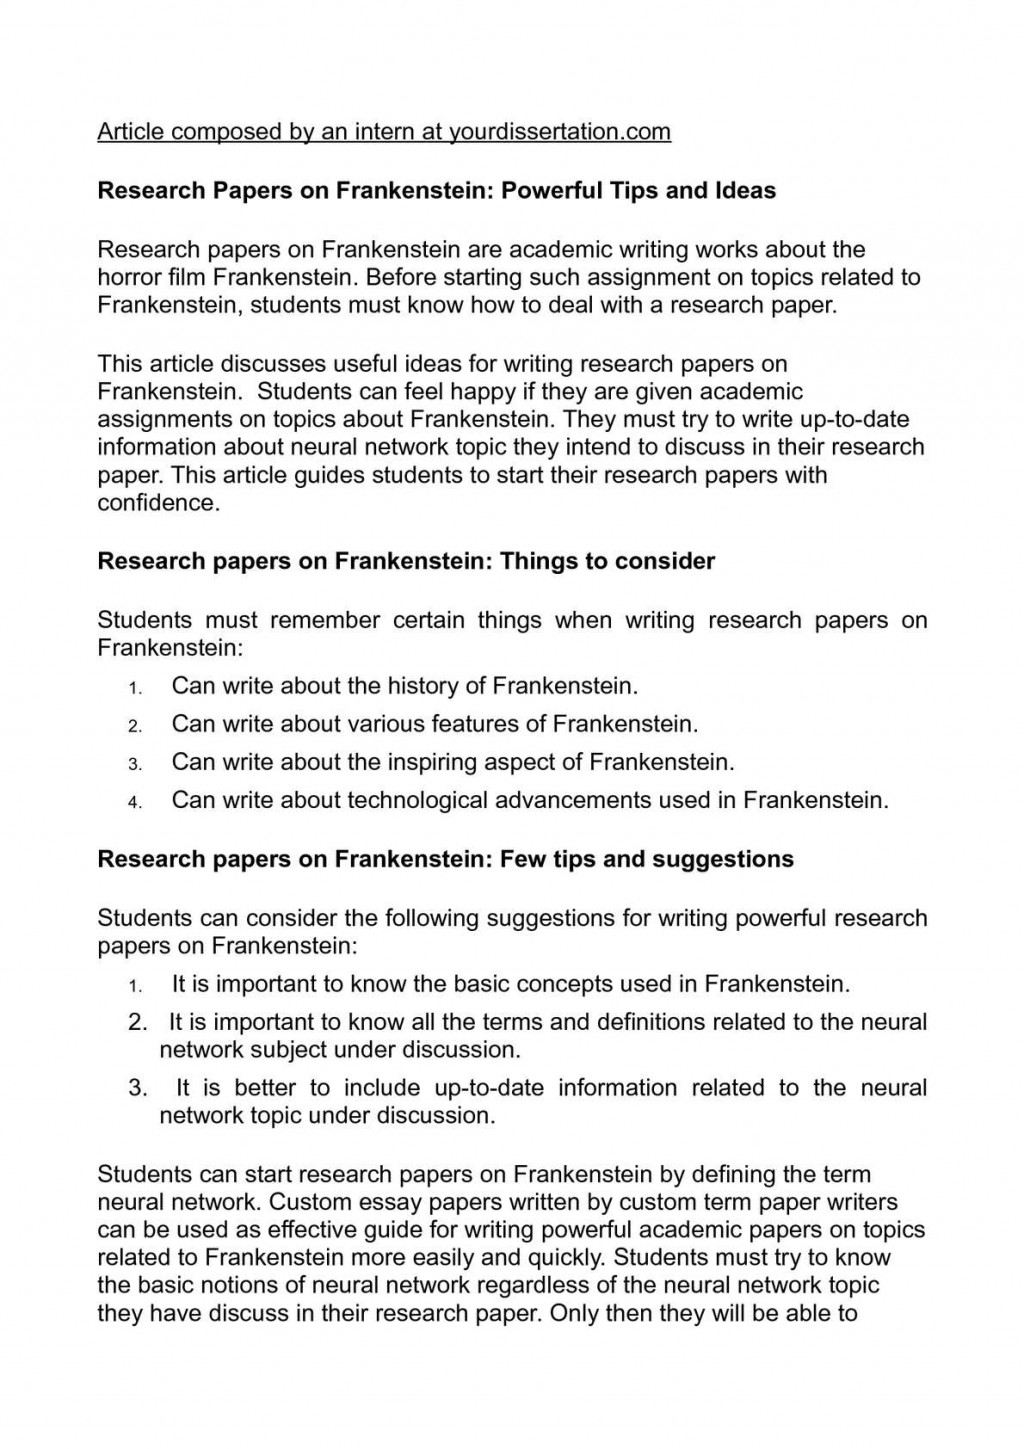 003 Research Paper P1 Papers Surprising Ideas High School Topics Science Writing Large